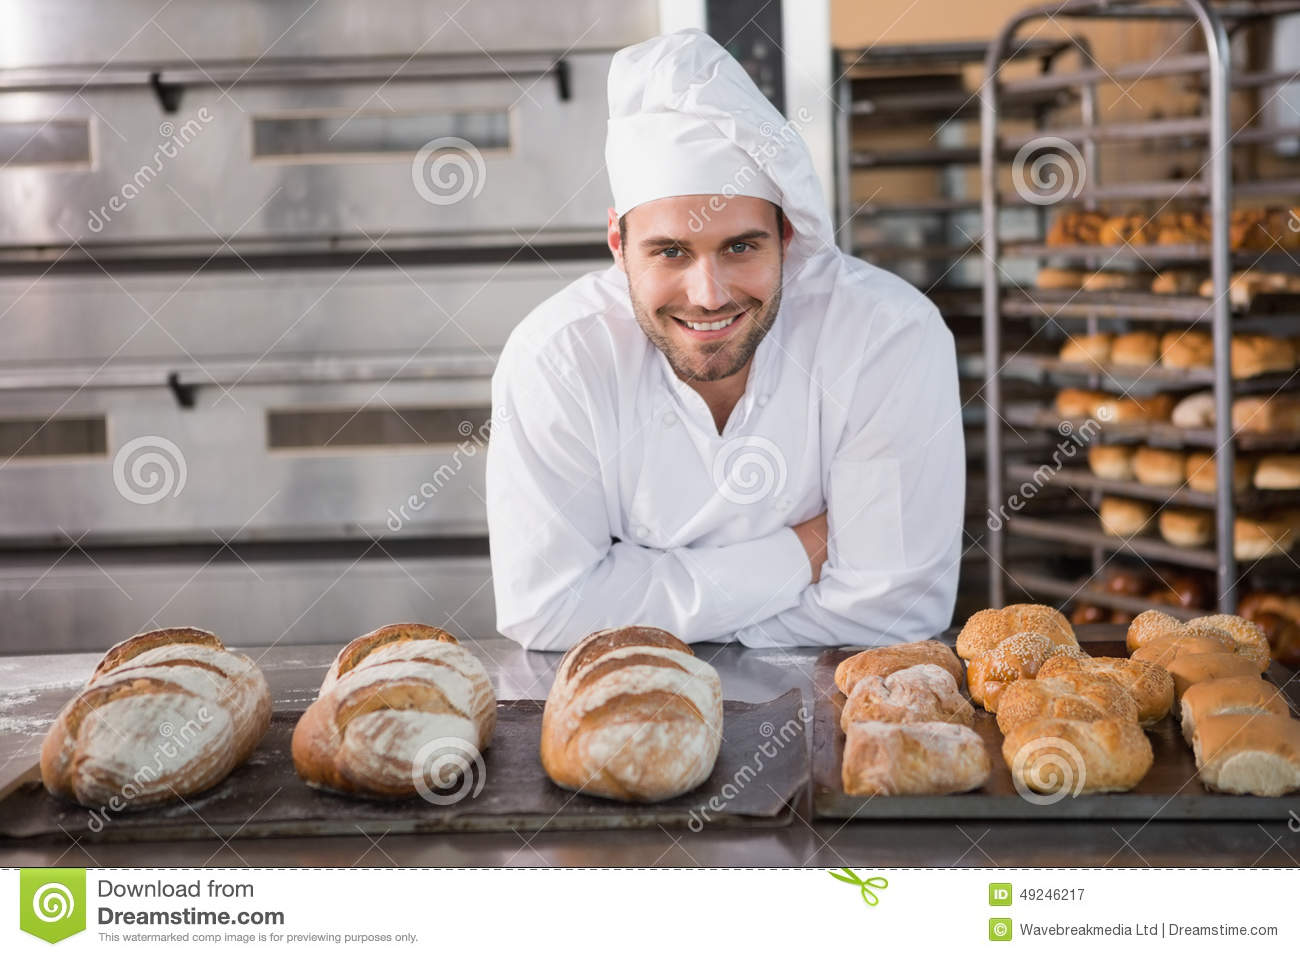 Happy baker standing near tray with bread